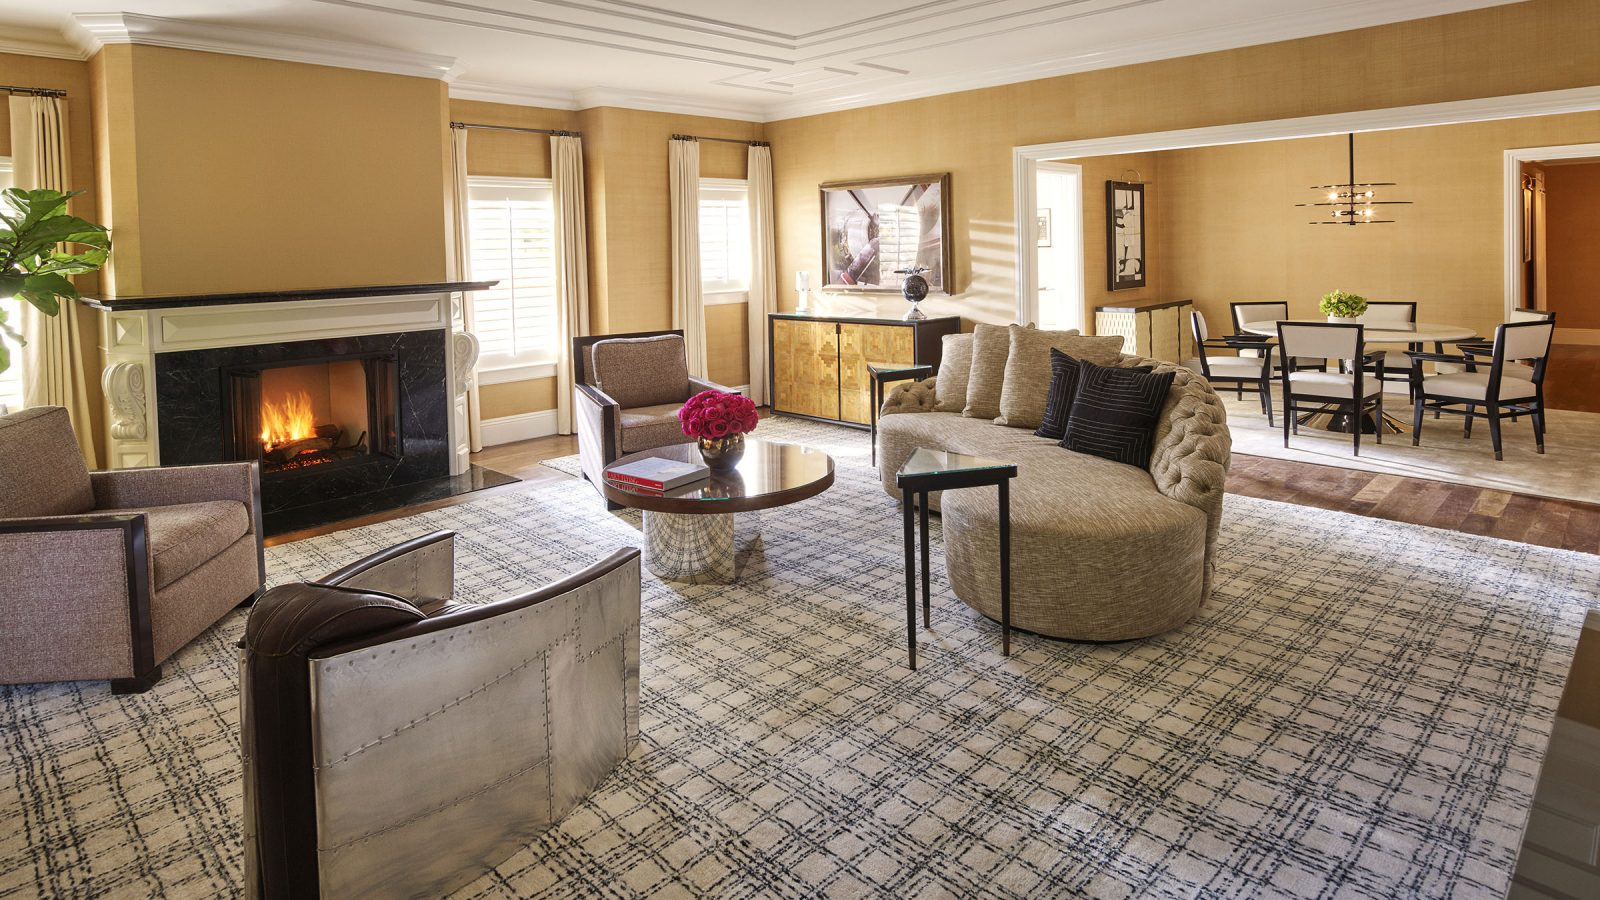 Inside the bungalows at The Beverly Hills Hotel